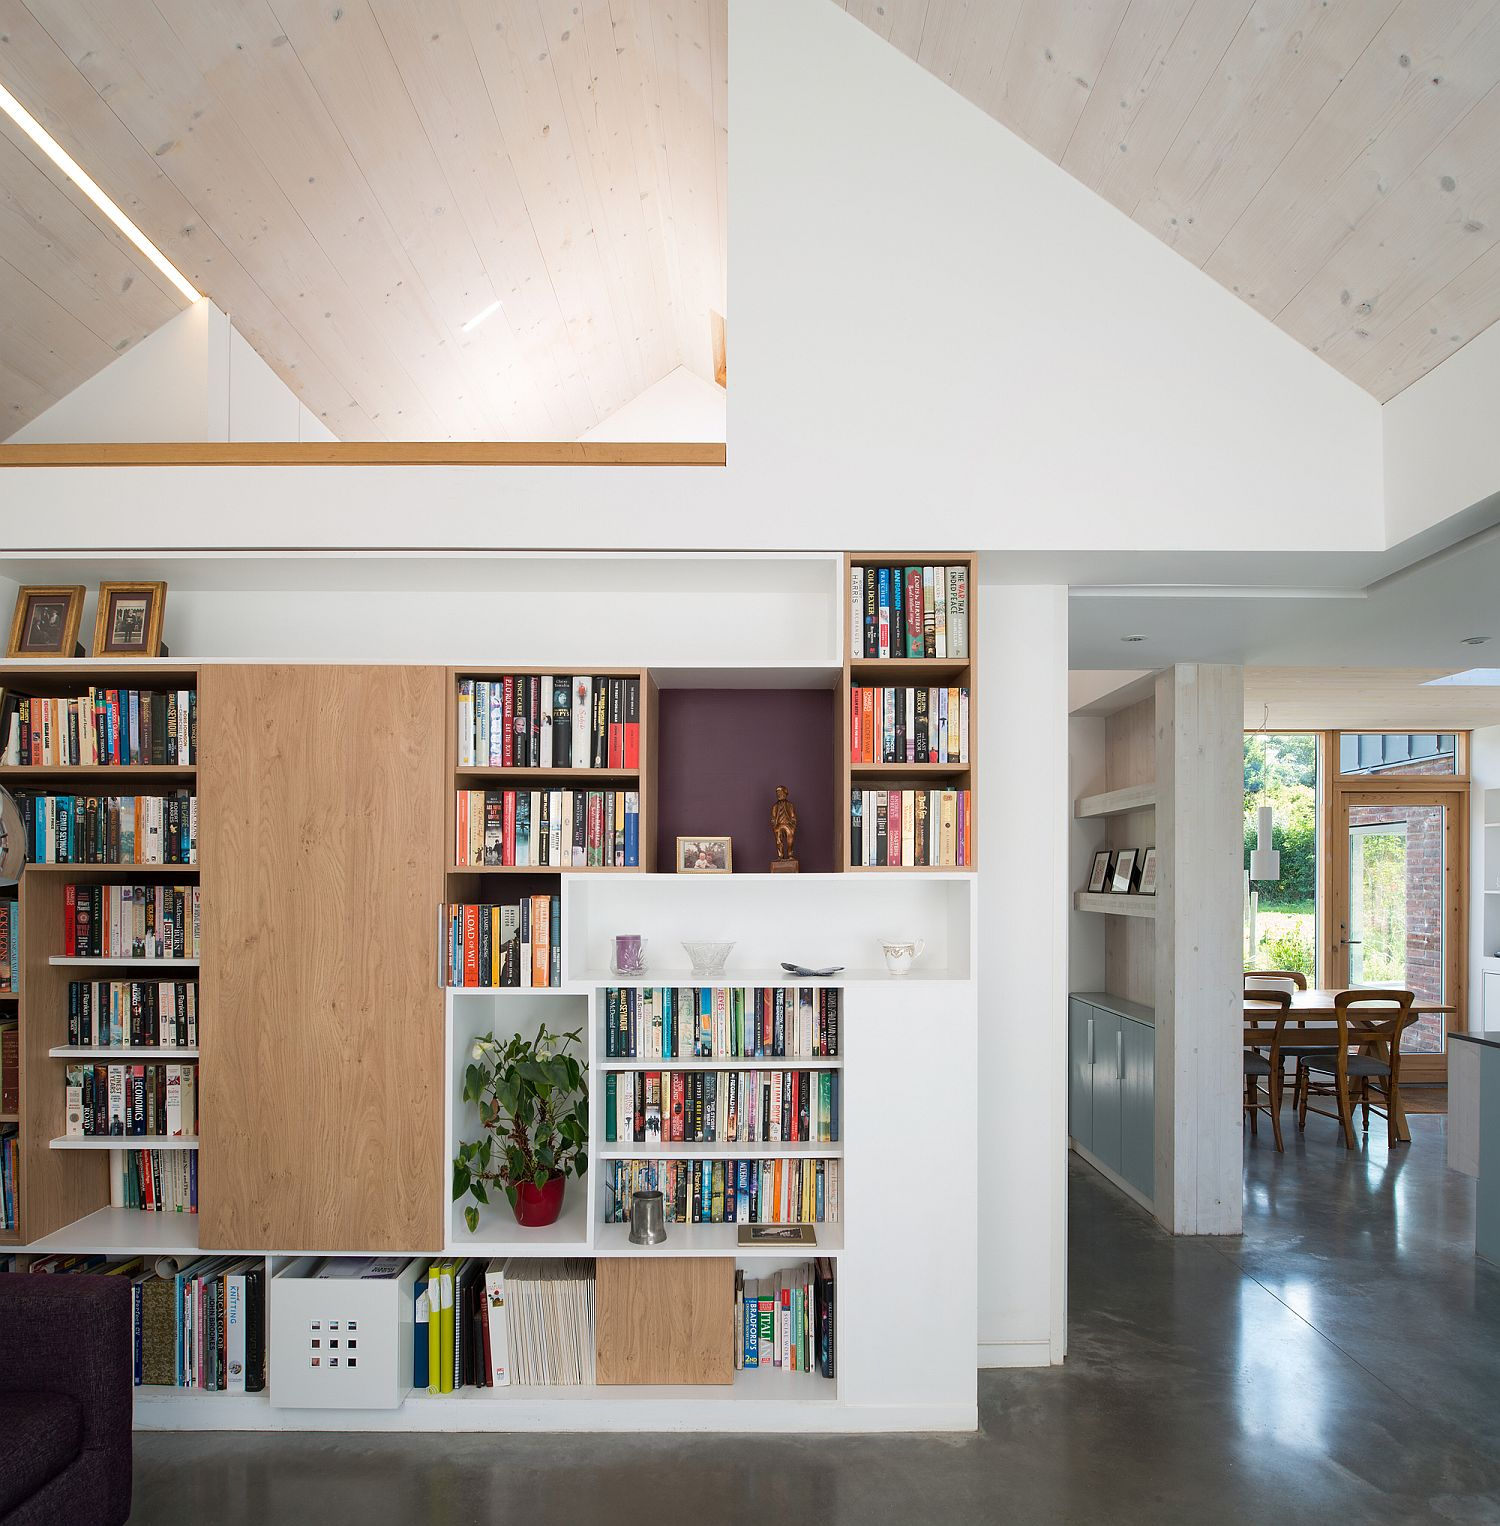 Smart-placement-of-books-in-the-living-room-adds-color-to-the-setting